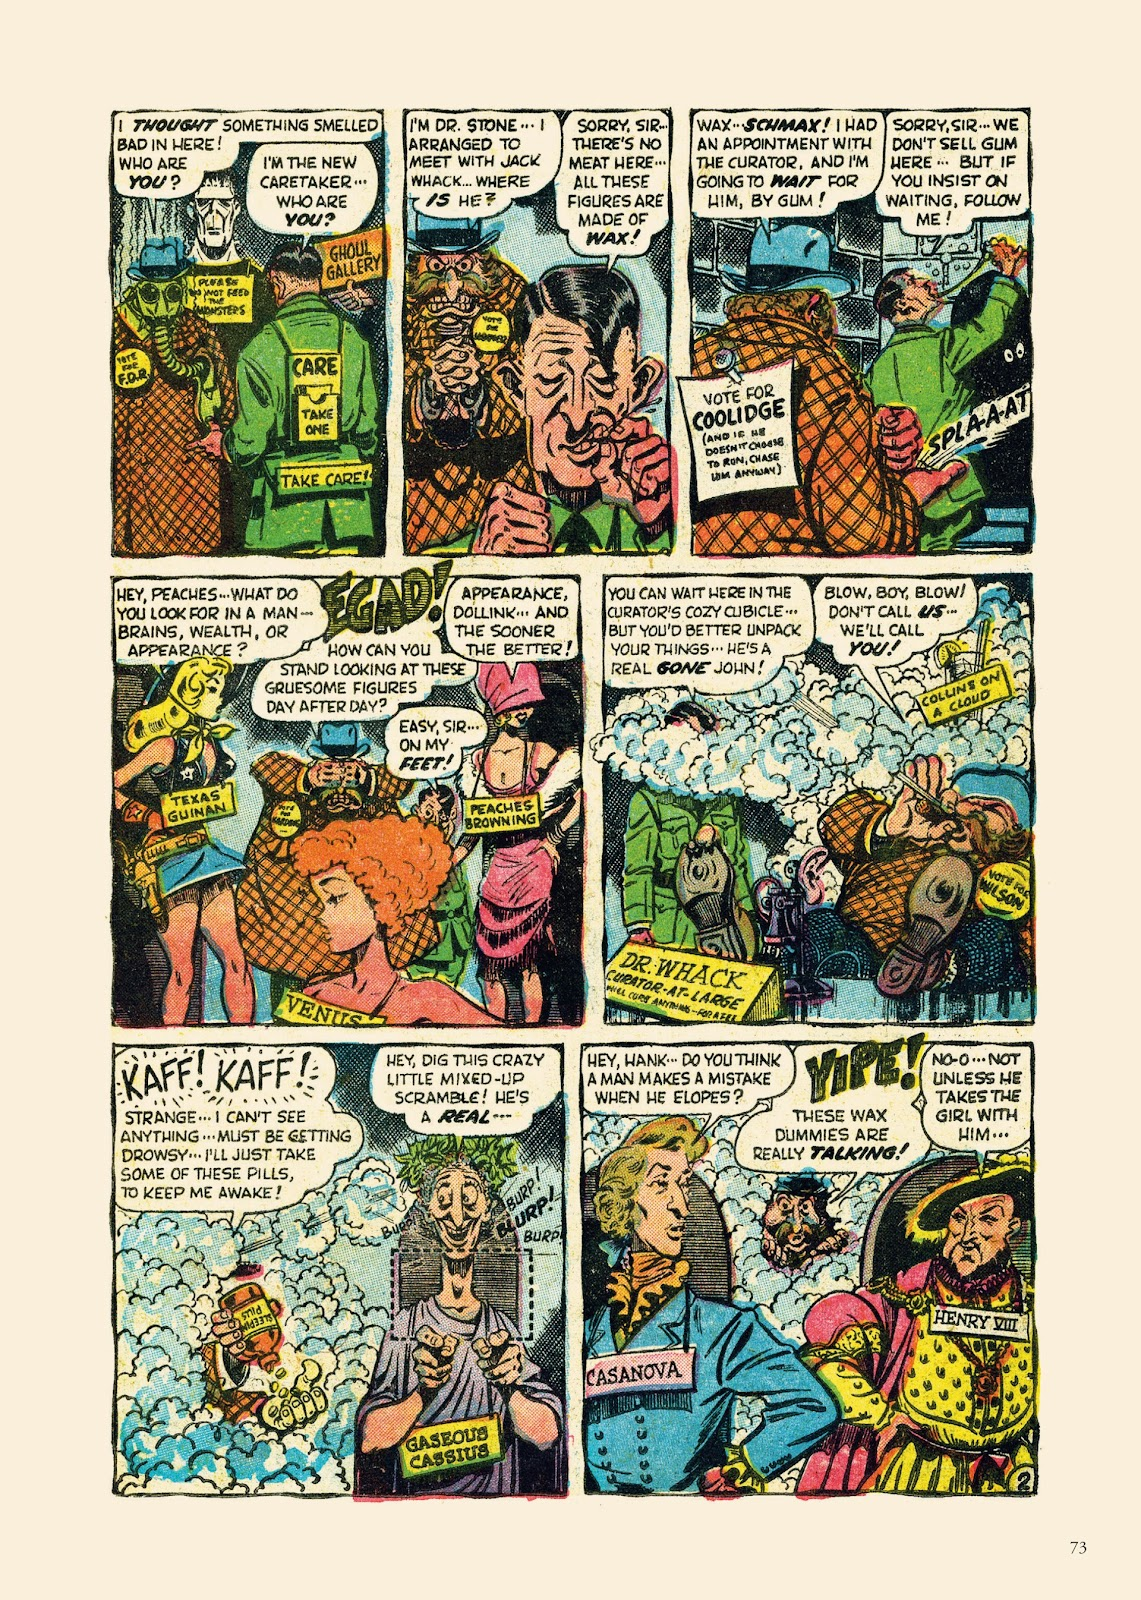 Read online Sincerest Form of Parody: The Best 1950s MAD-Inspired Satirical Comics comic -  Issue # TPB (Part 1) - 74